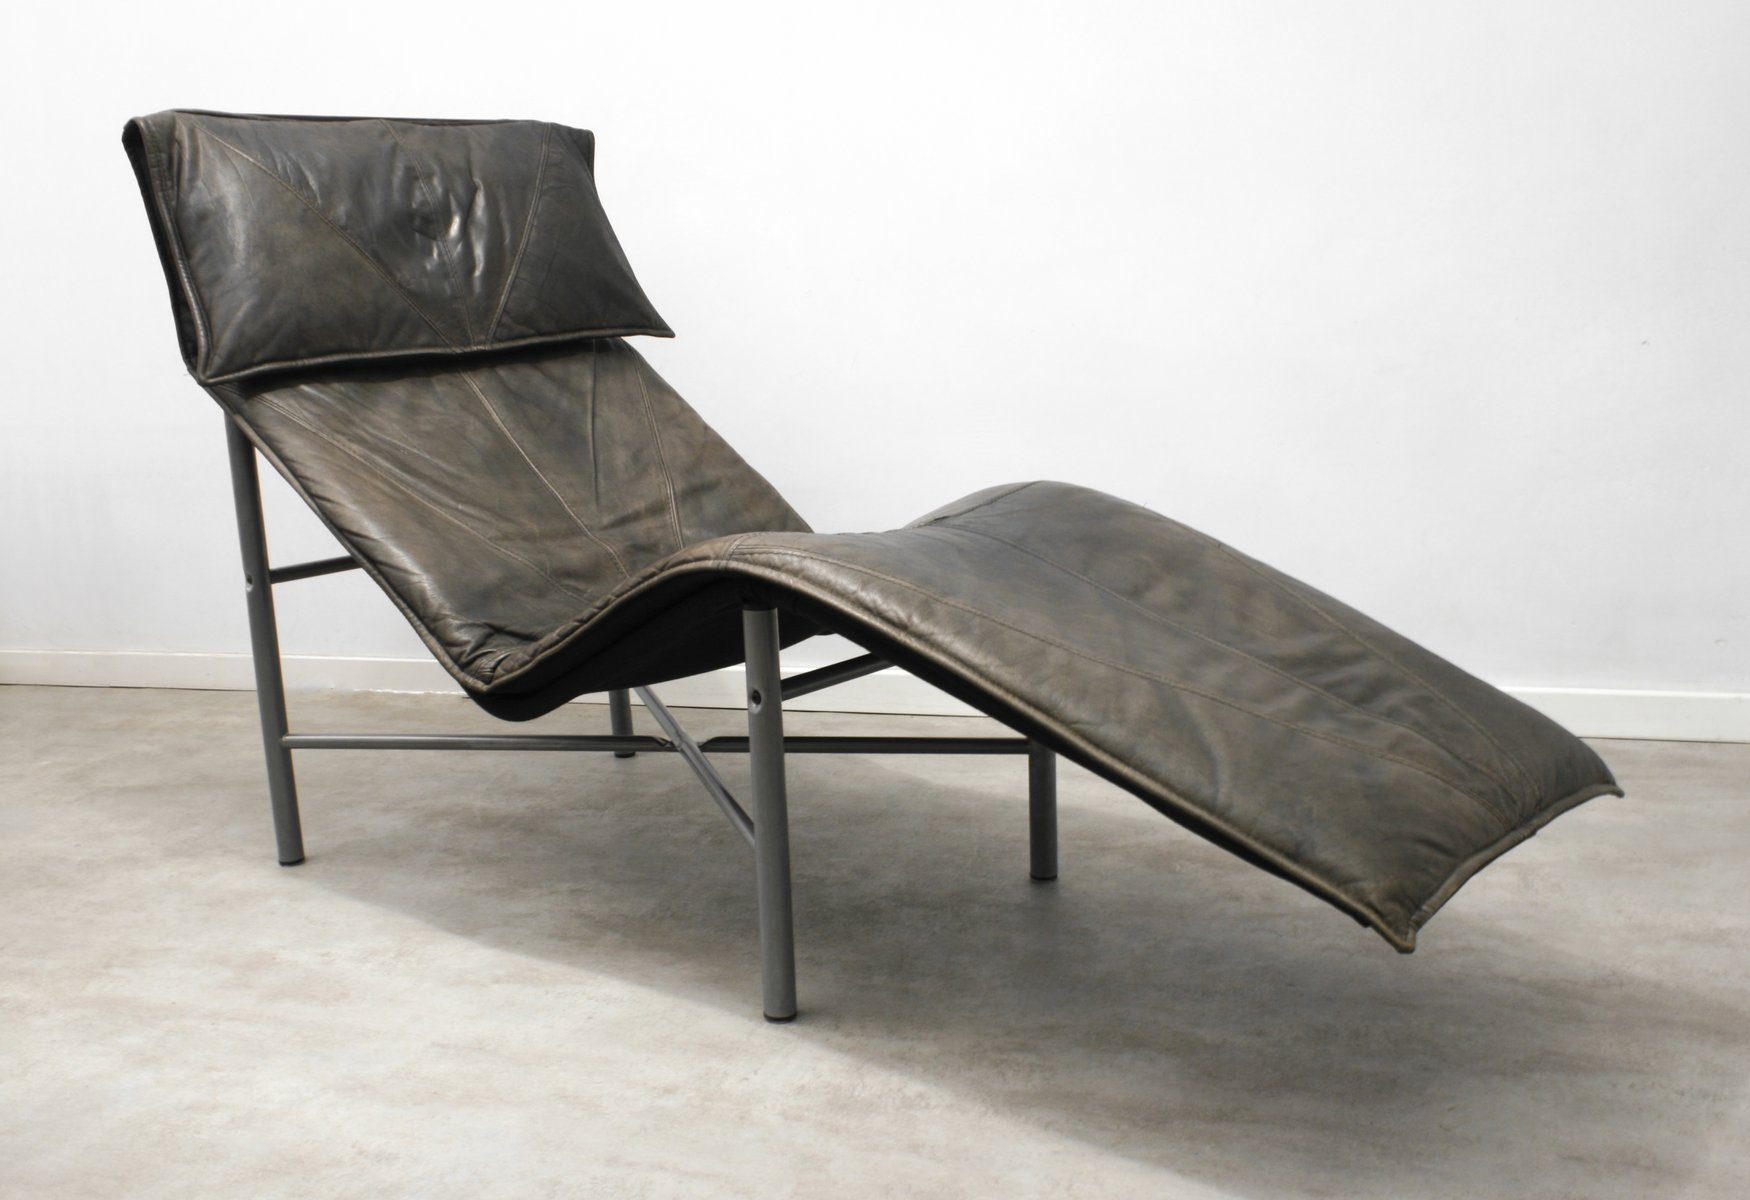 Brown leather skye chaise lounge by tord bj rklund for for Chaise longue designer